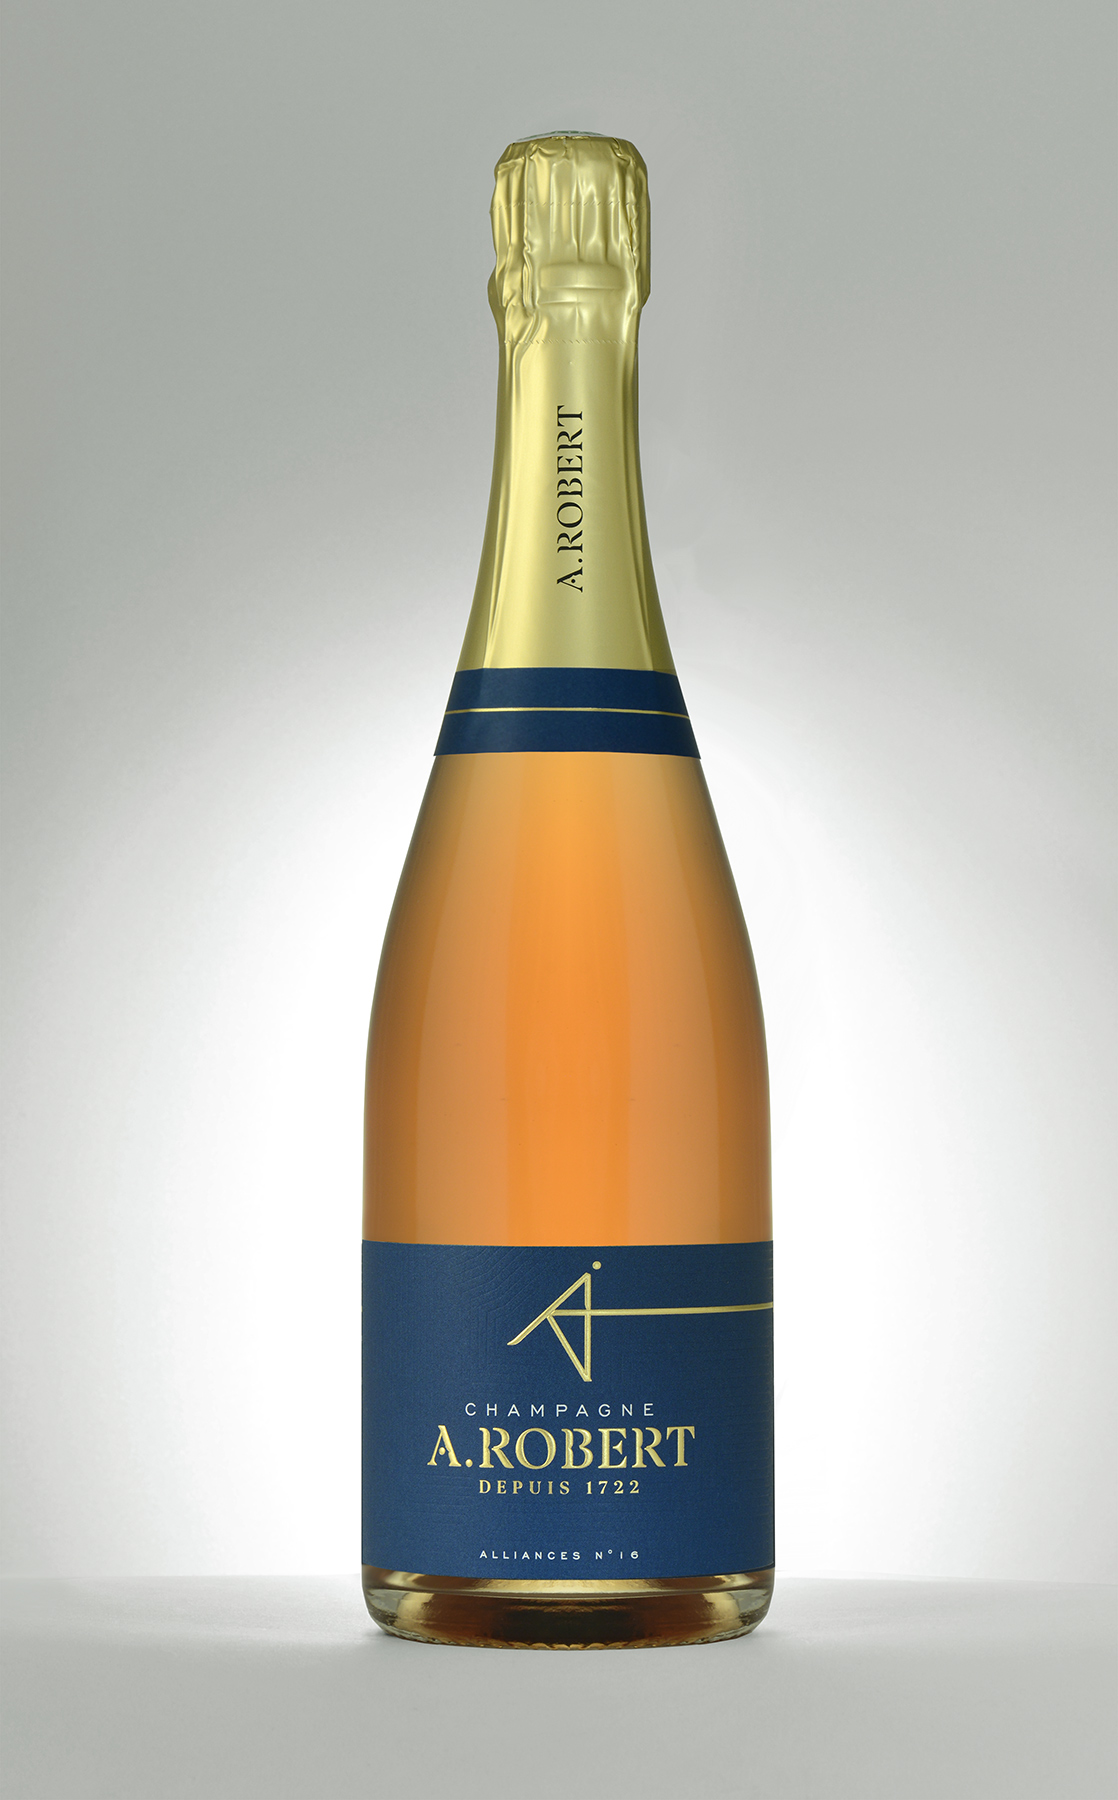 Image De Champagne champagne a. robert - pink champagne